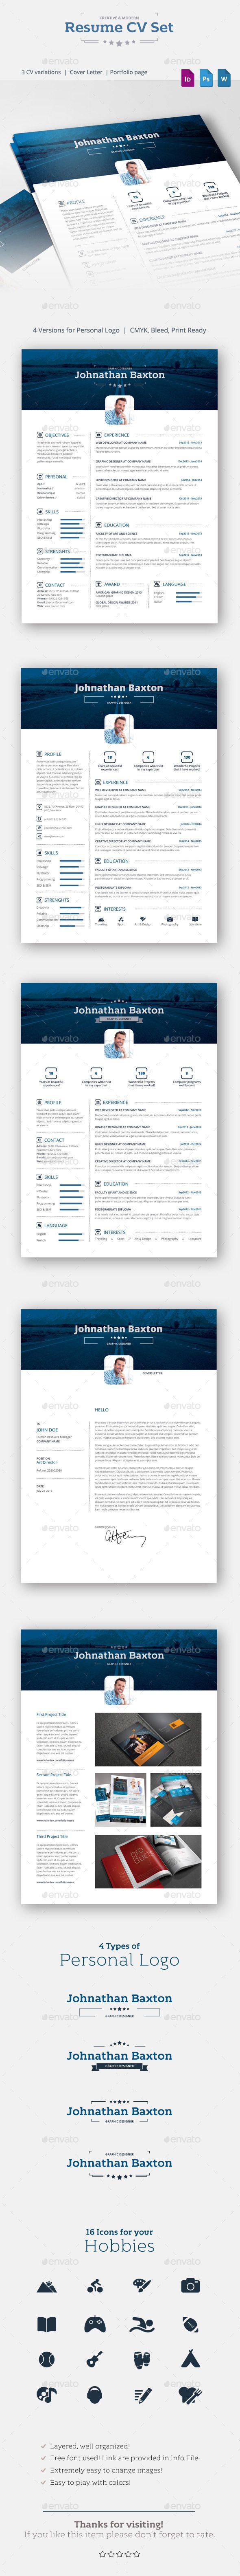 A modern 5 pieces resume set which helps you to present yourself in the smartest way. Take it and create a strong impression about you. In this set you will find three versio of CV, Cover Letter and Portfolio. This Resume comes in one color, but you can play with colors anyway you want.